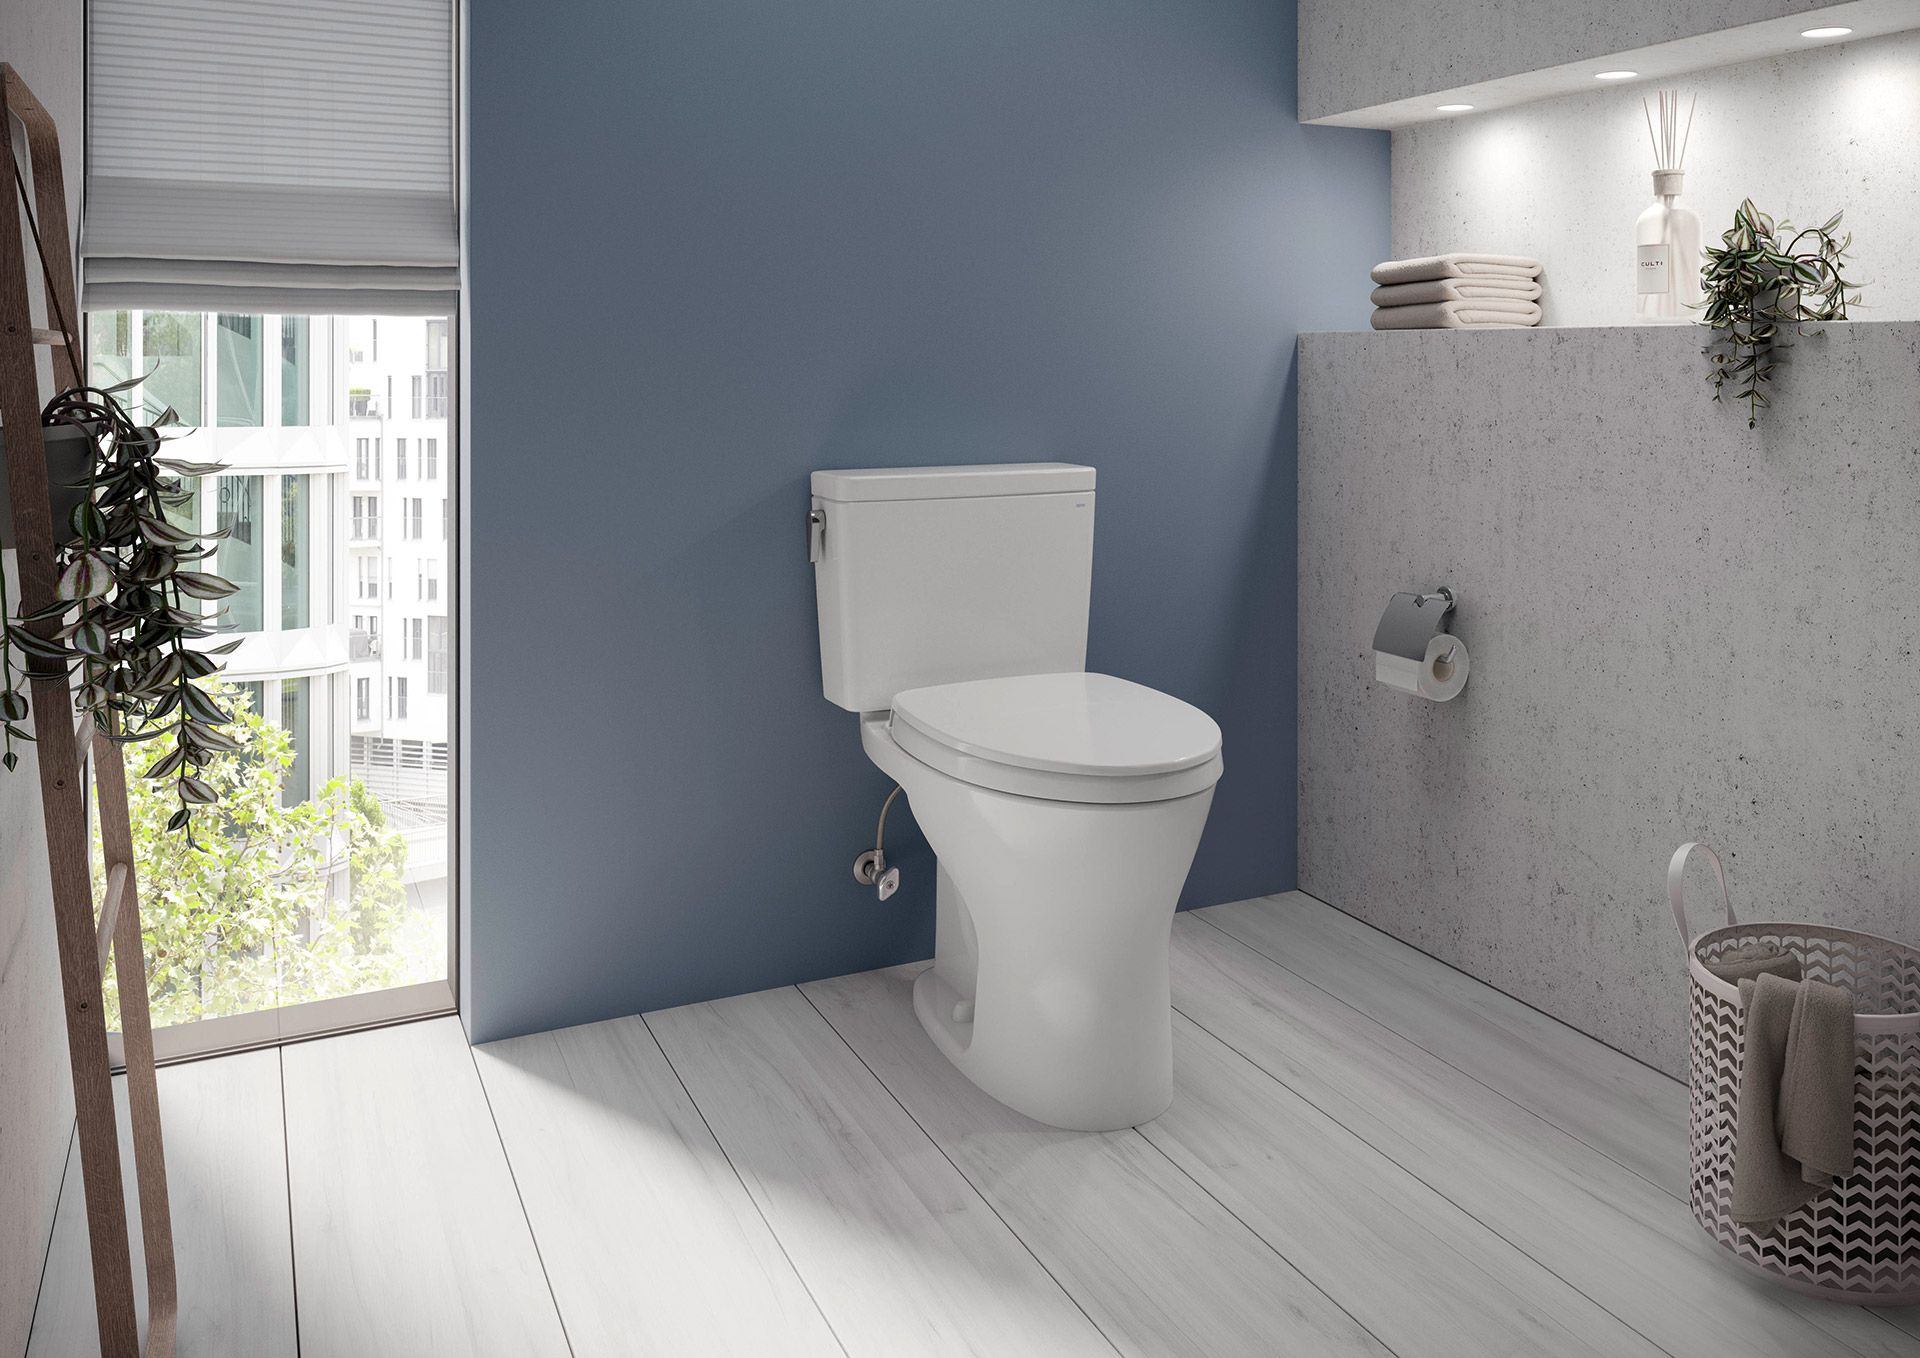 Keeping a Toto toilet clean